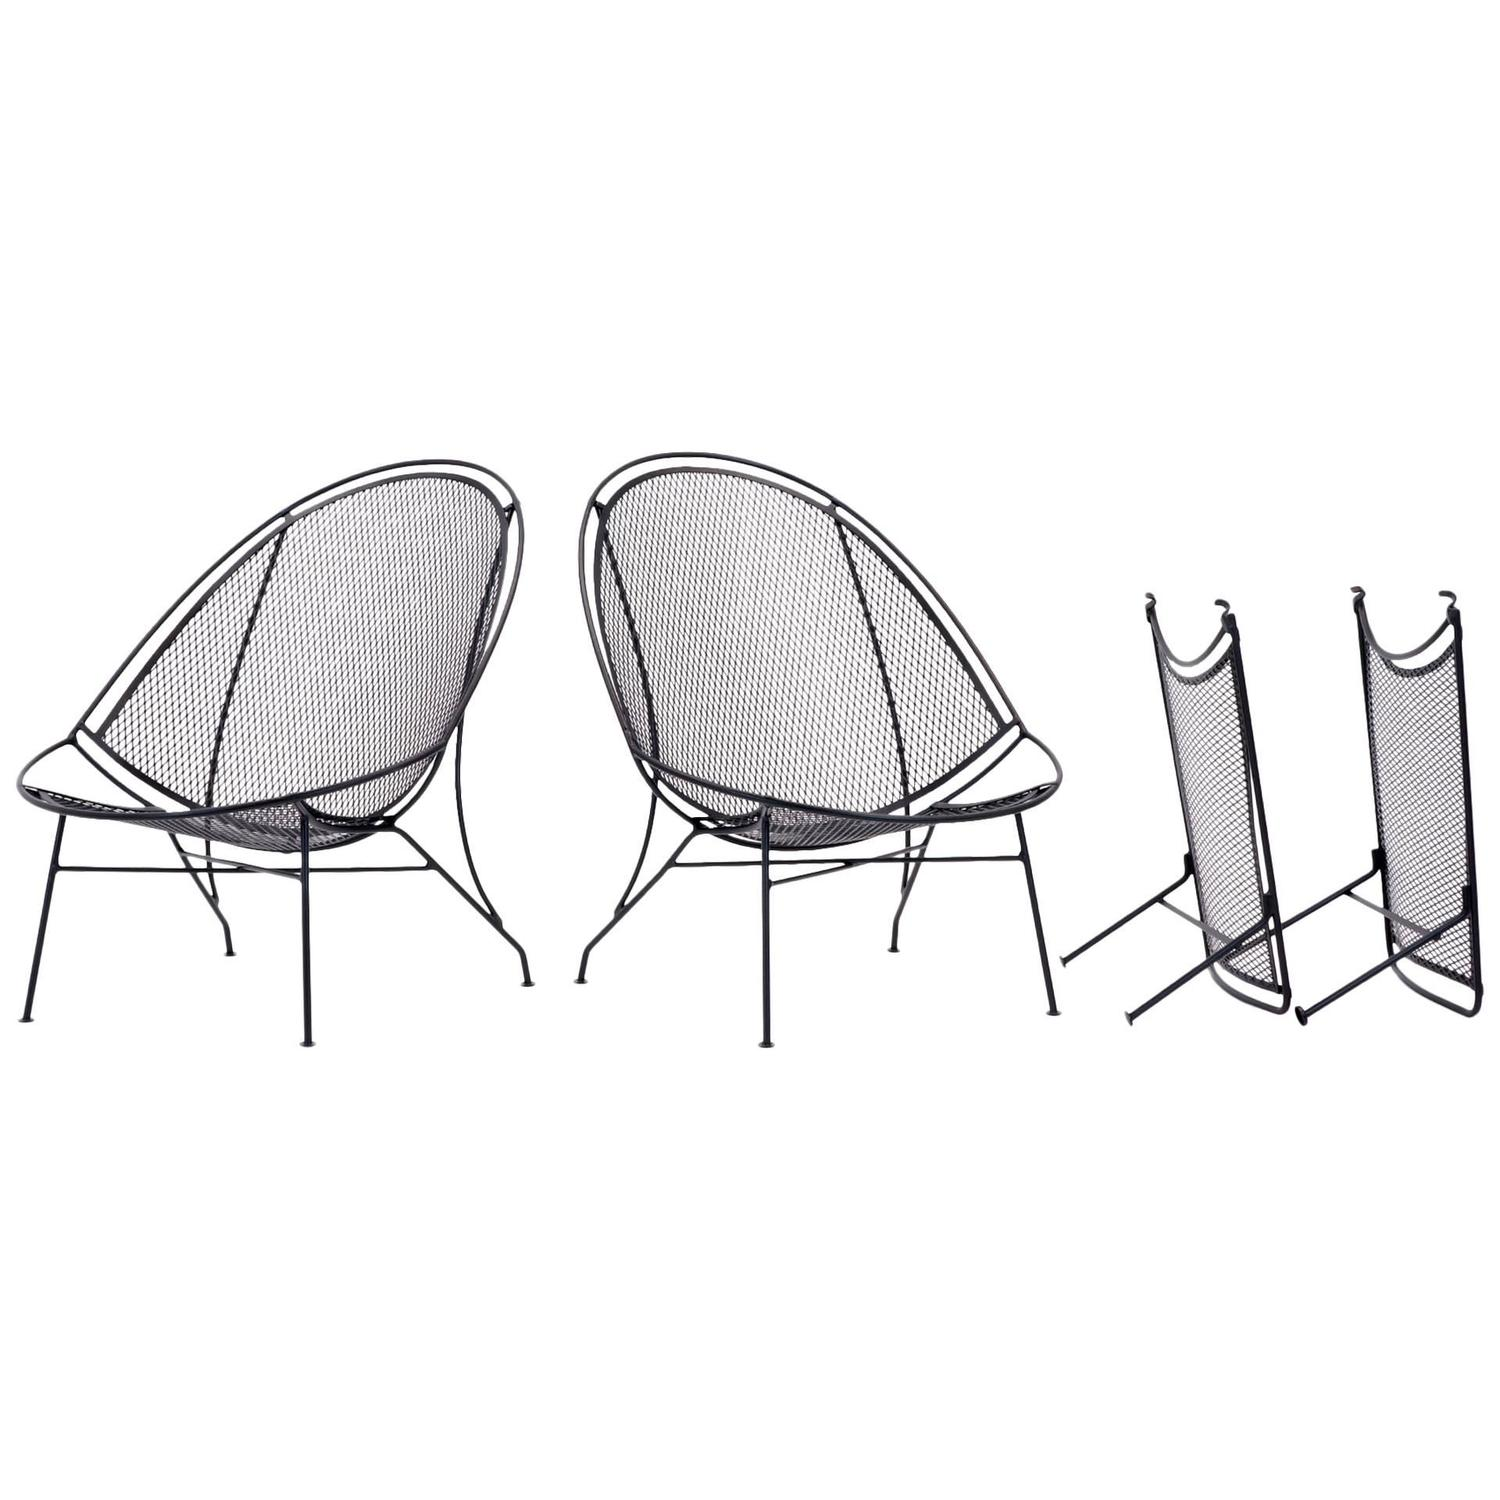 patio chairs with footrests chair steel folding rare pair of john salterini chaise lounge